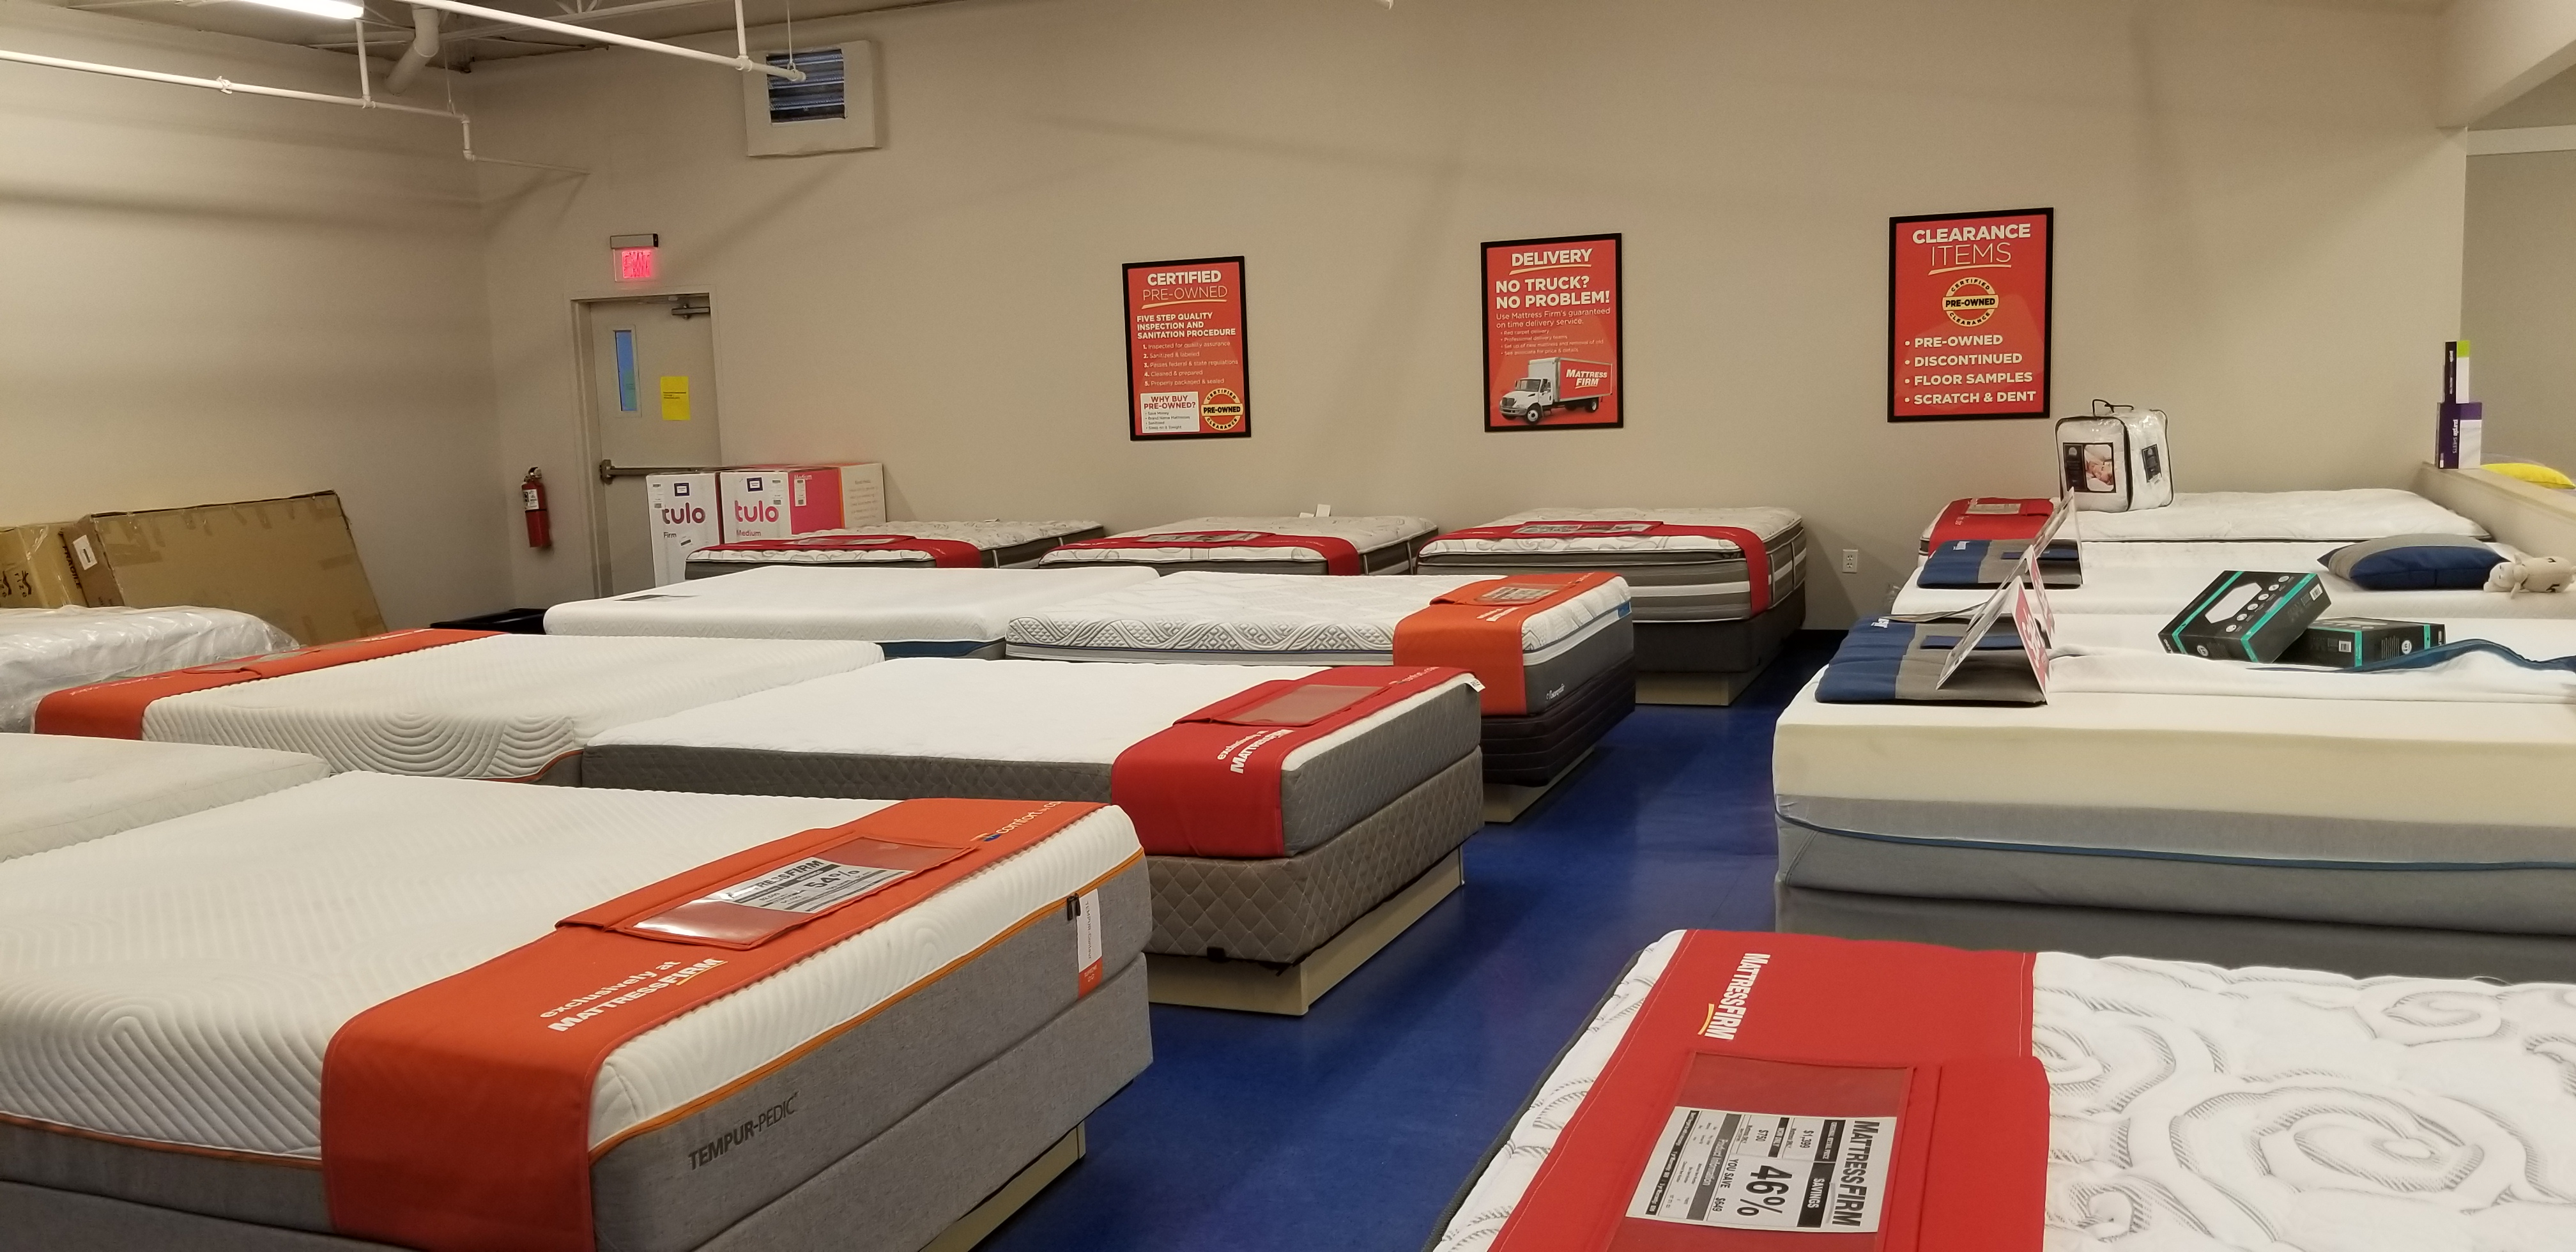 Mattress Firm Phoenix image 3